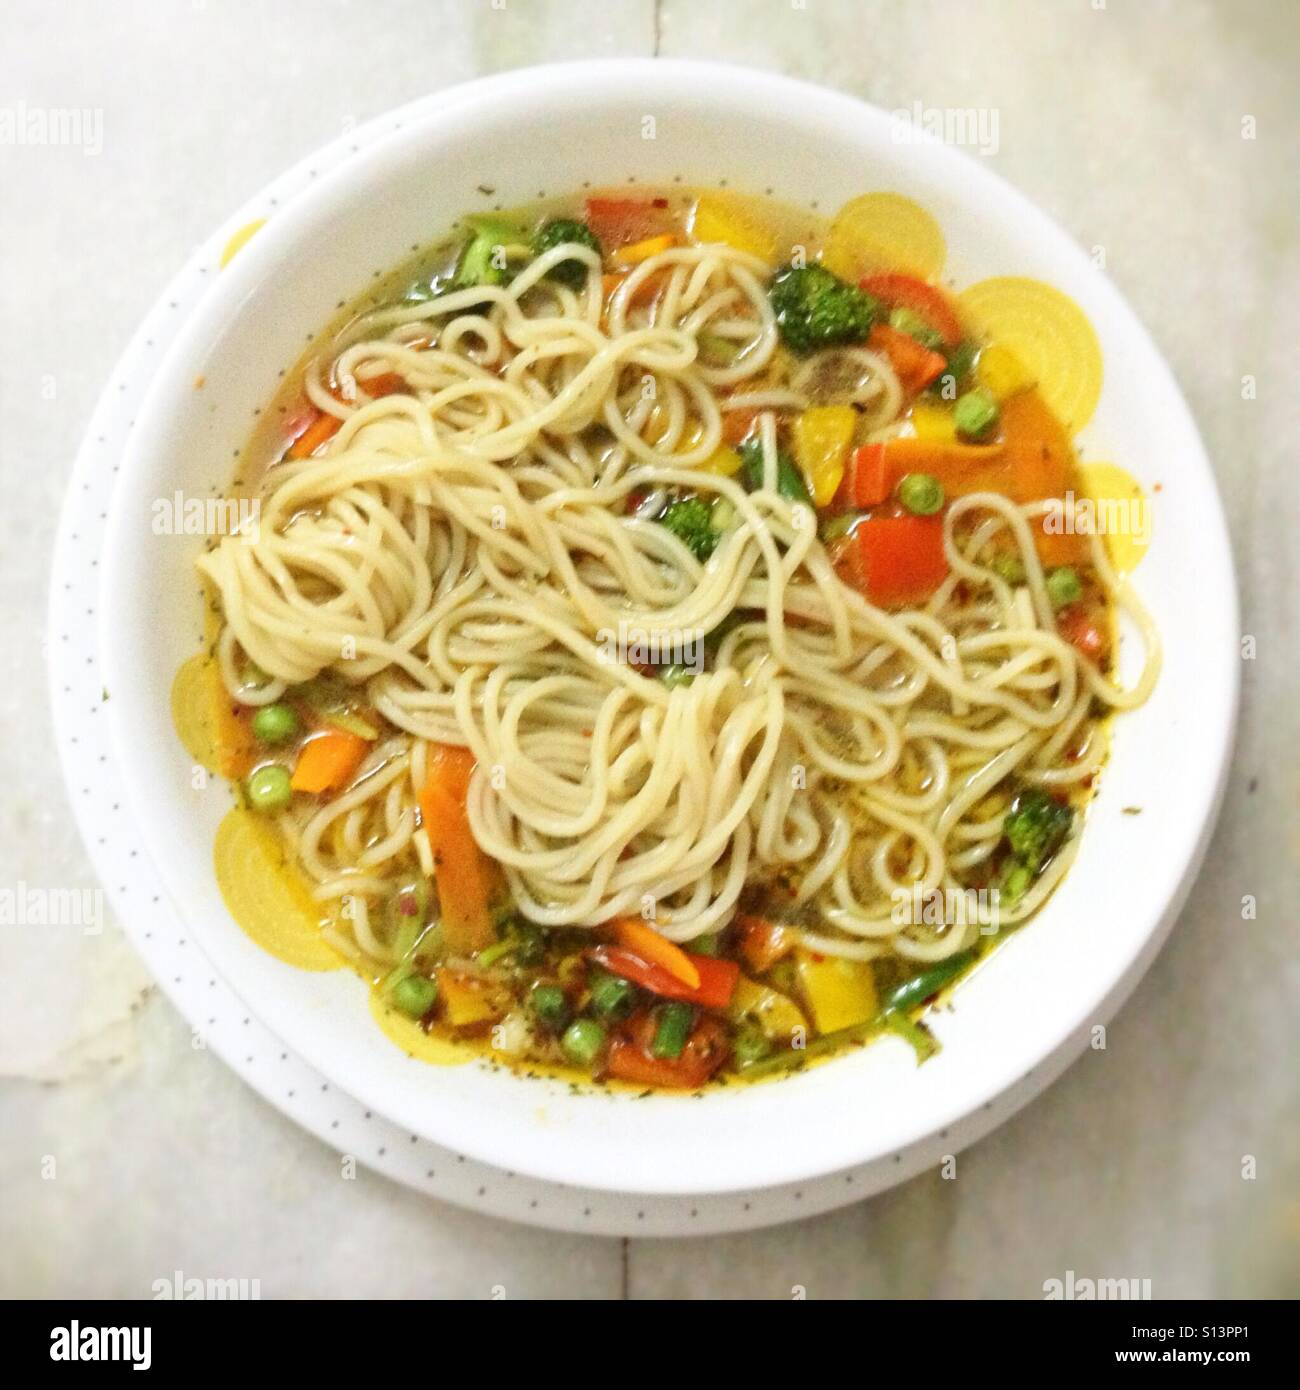 Bowl of Noodles and Vegetables - Stock Image